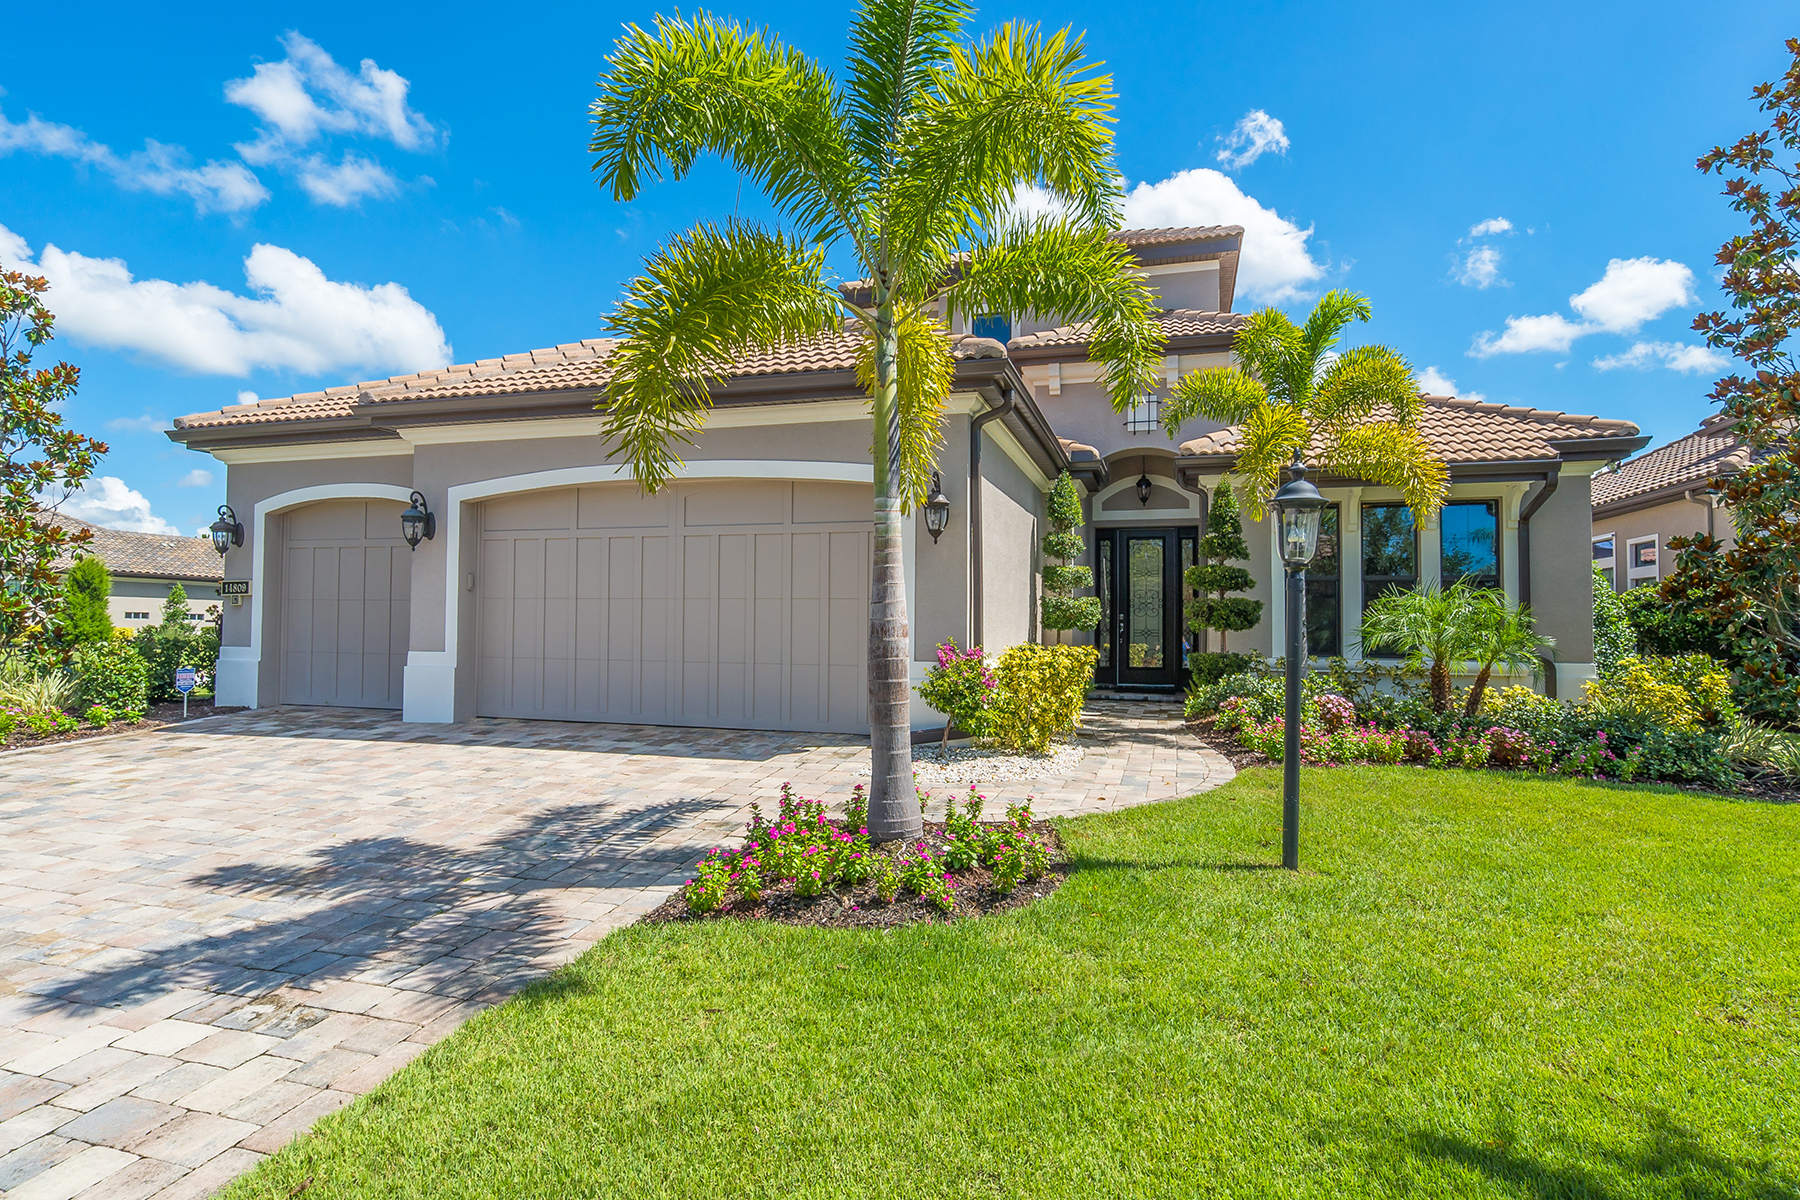 Single Family Home for Sale at COUNTRY CLUB EAST 14809 Secret Harbor Pl Lakewood Ranch, Florida, 34202 United States